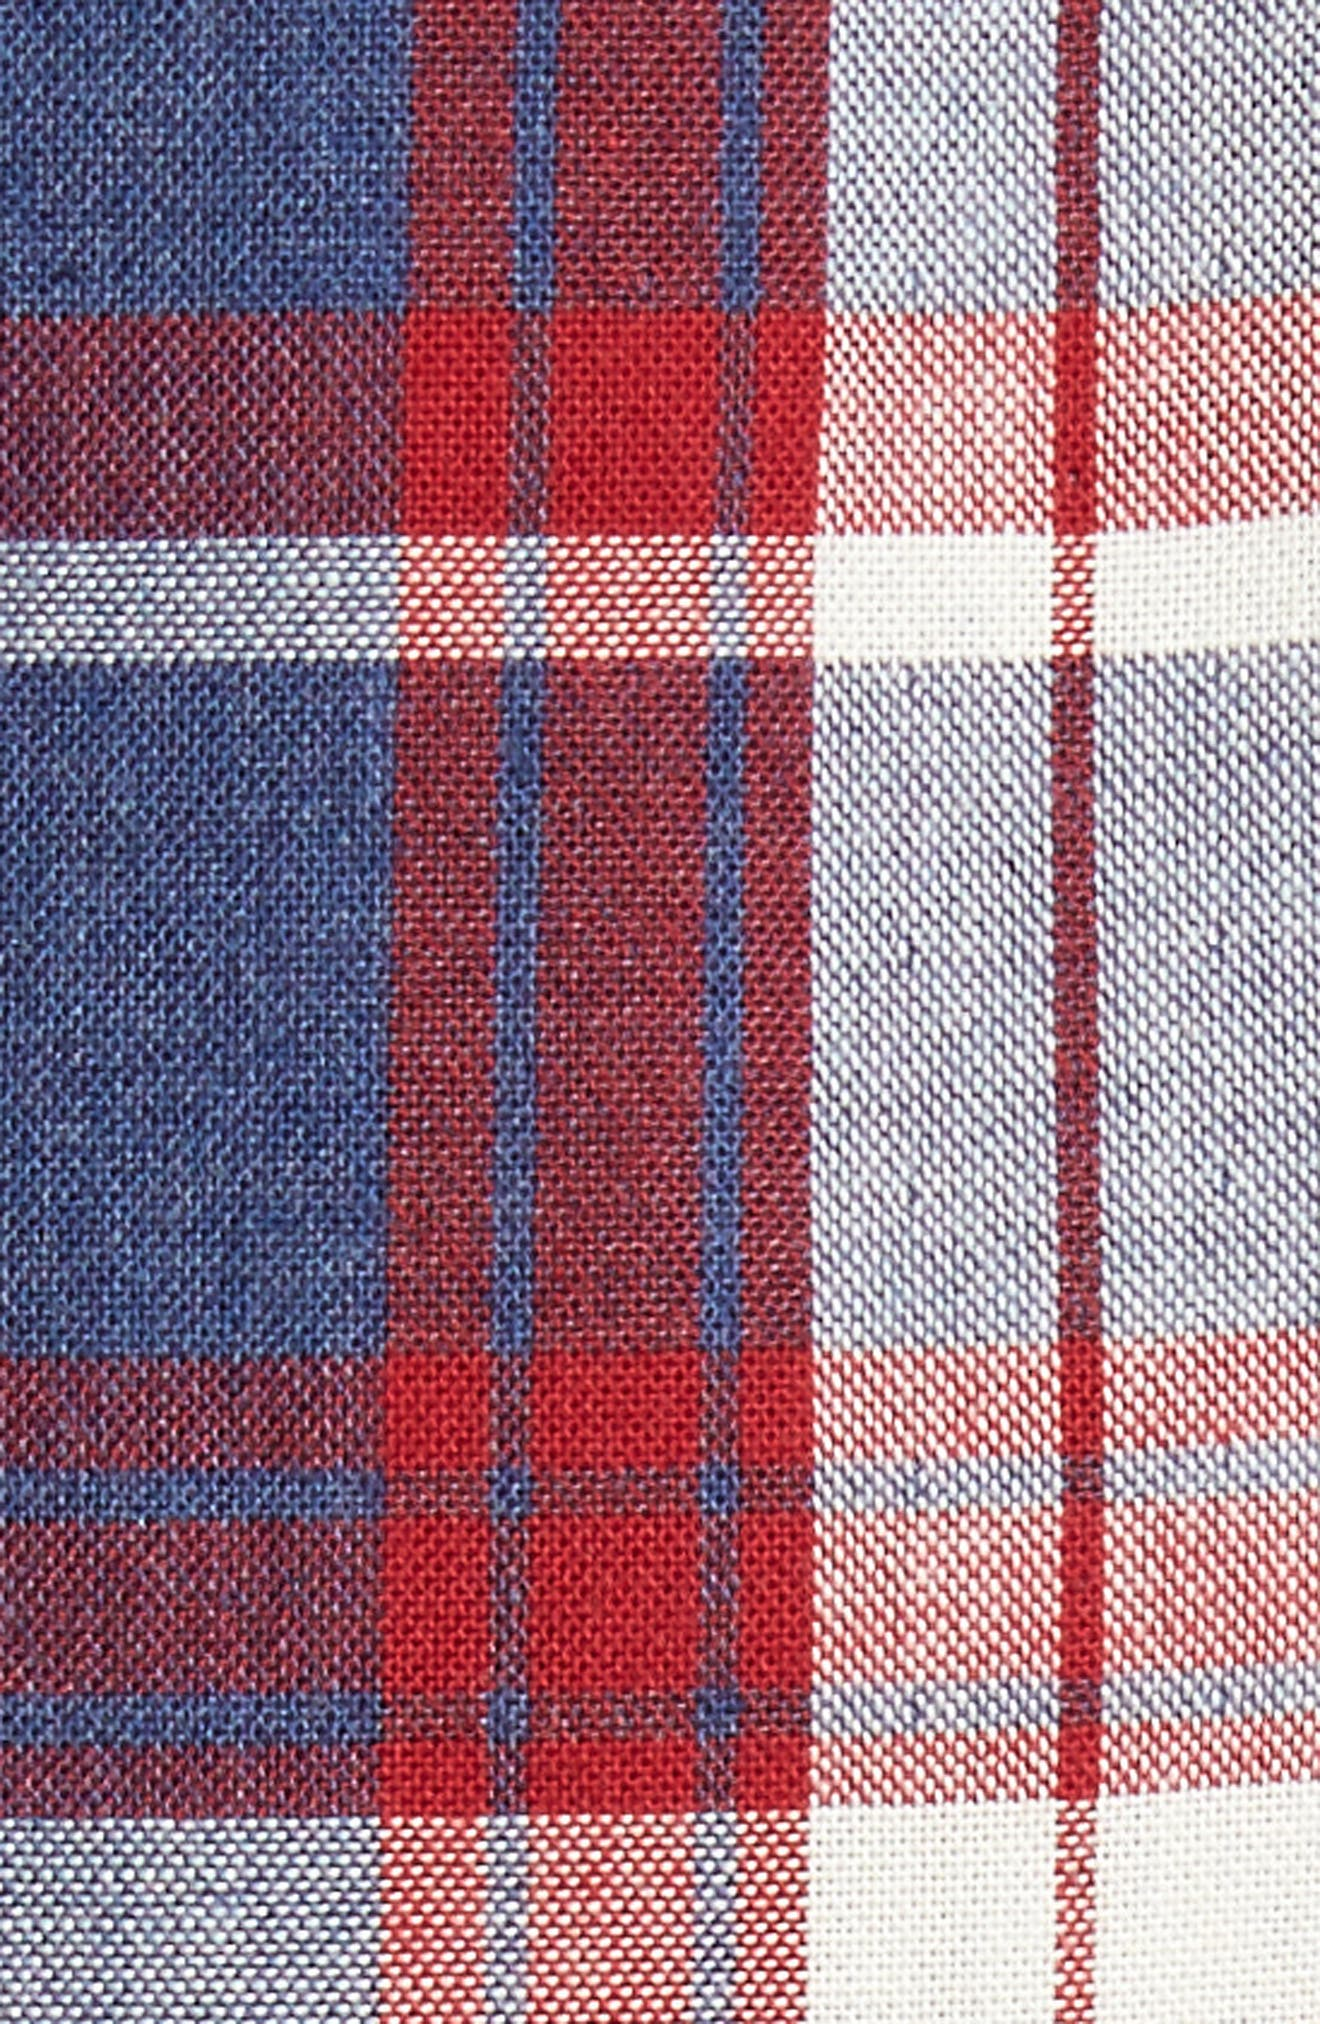 Trim Fit Workwear Duofold Plaid Sport Shirt,                             Alternate thumbnail 5, color,                             Blue Ensign Red Plaid Duofold